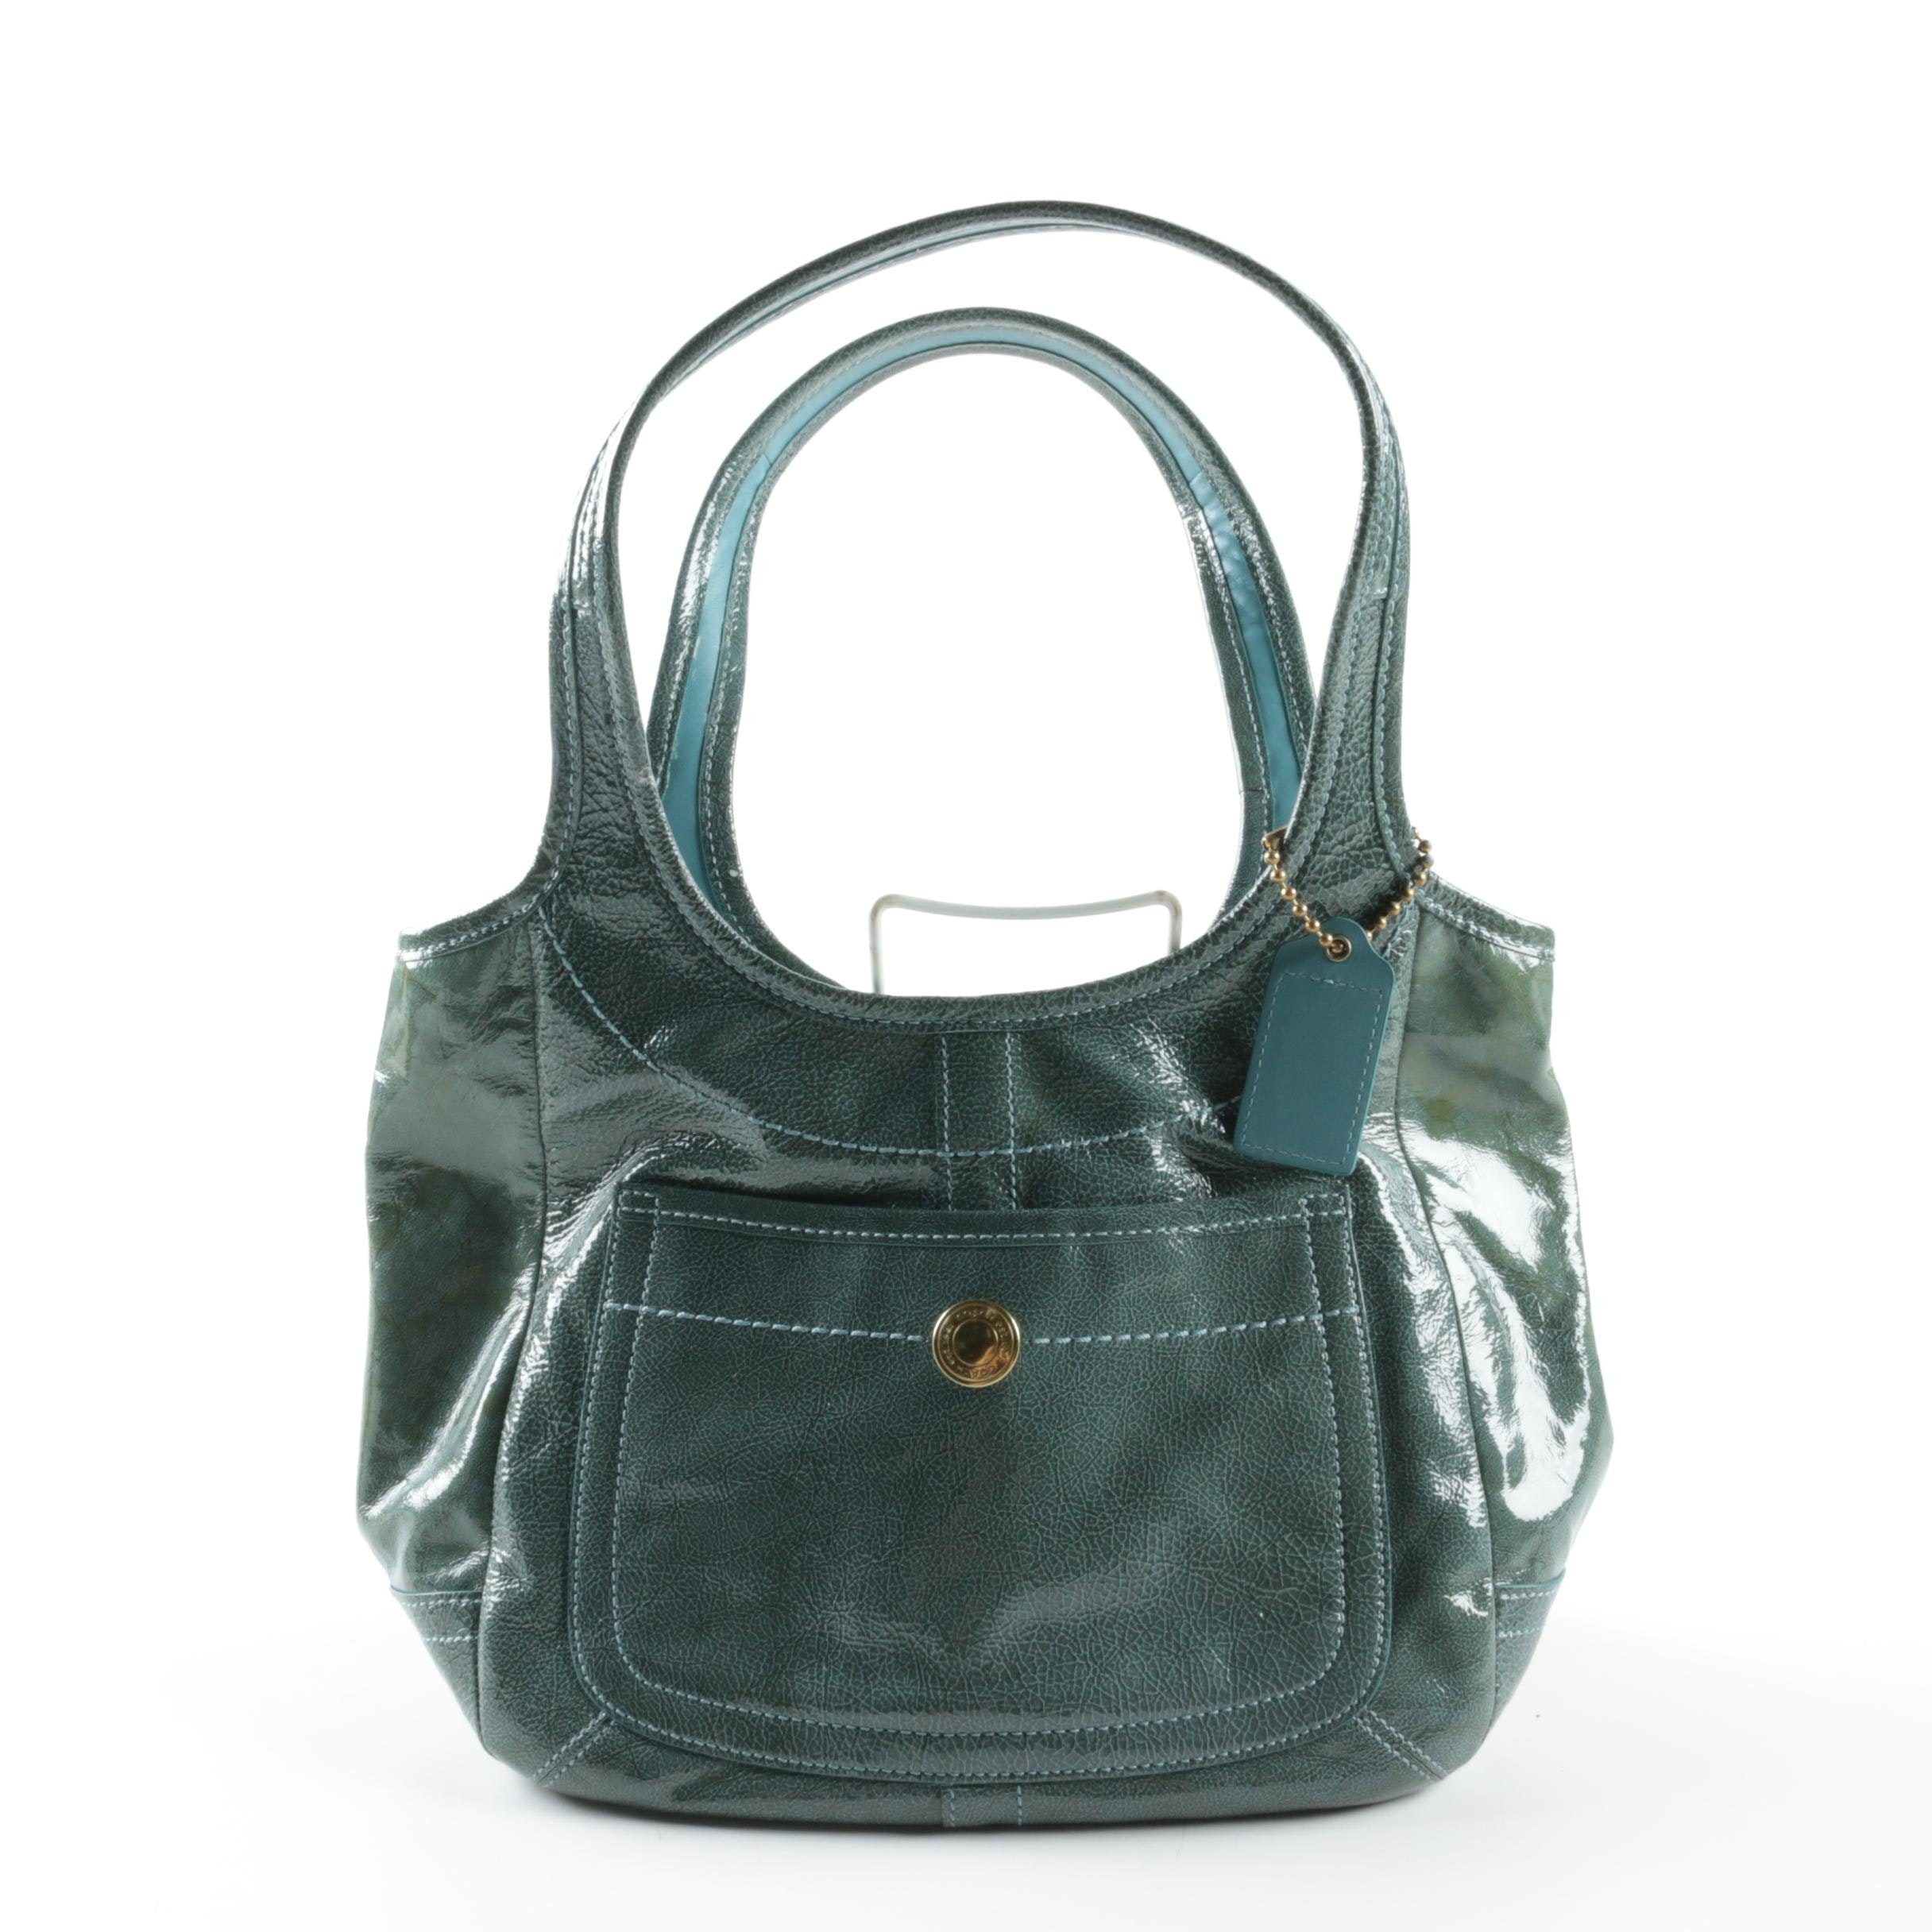 Coach Legacy Ergo Patent Leather Tote Bag